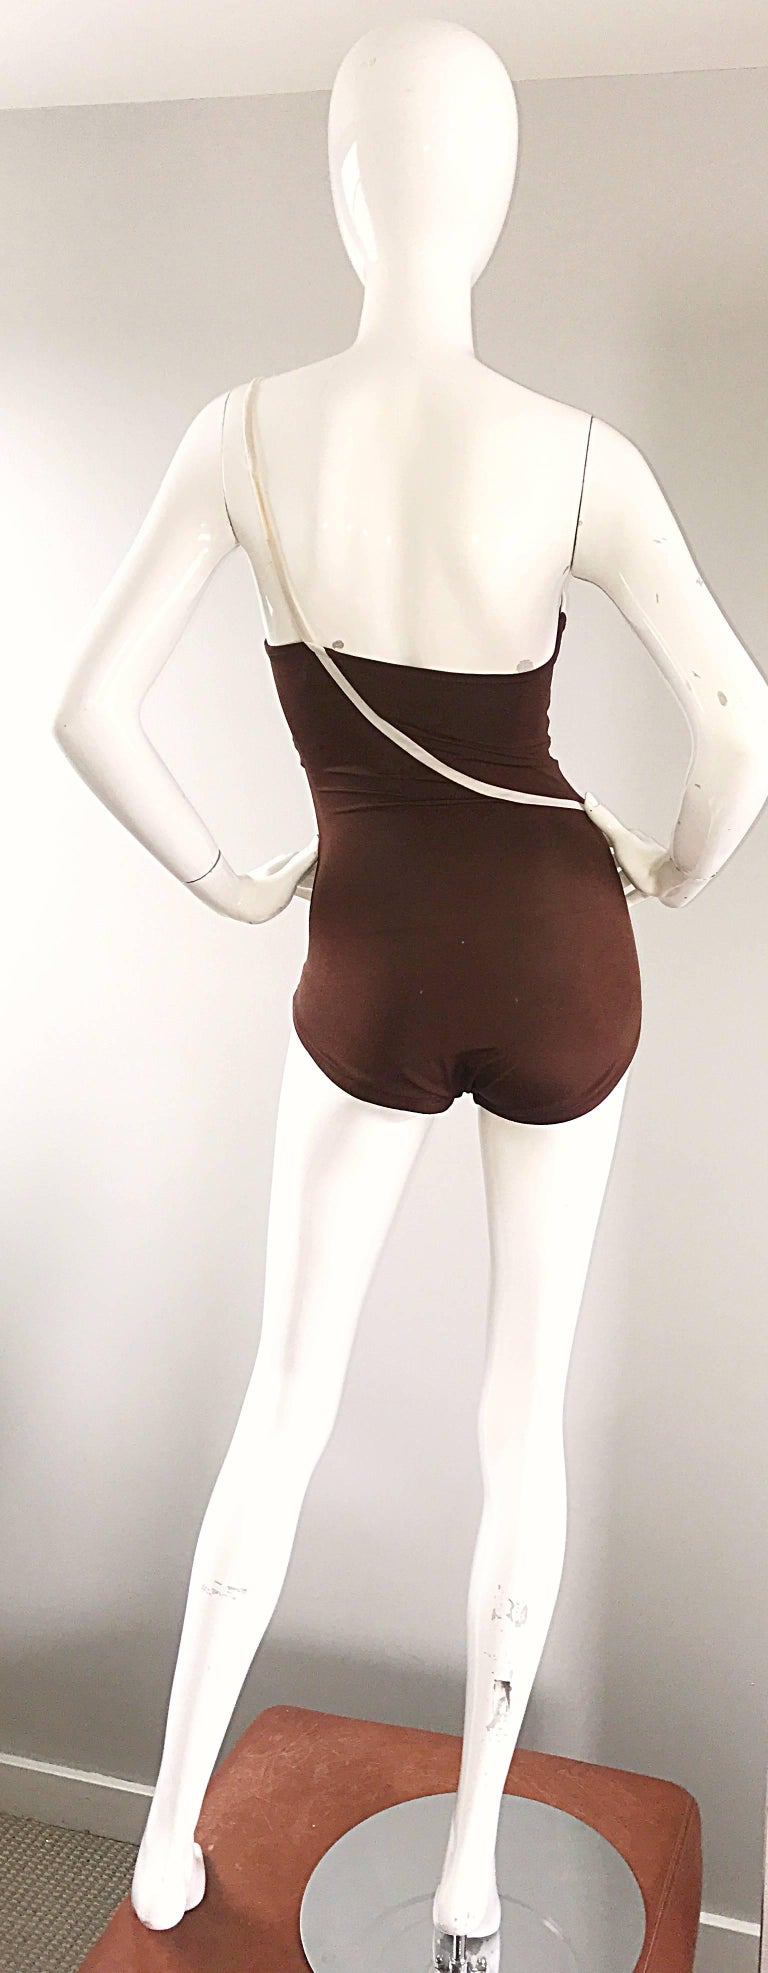 1970s Bill Blass Brown White One Shoulder Vintage One Piece Swimsuit Bodysuit In Excellent Condition For Sale In Chicago, IL